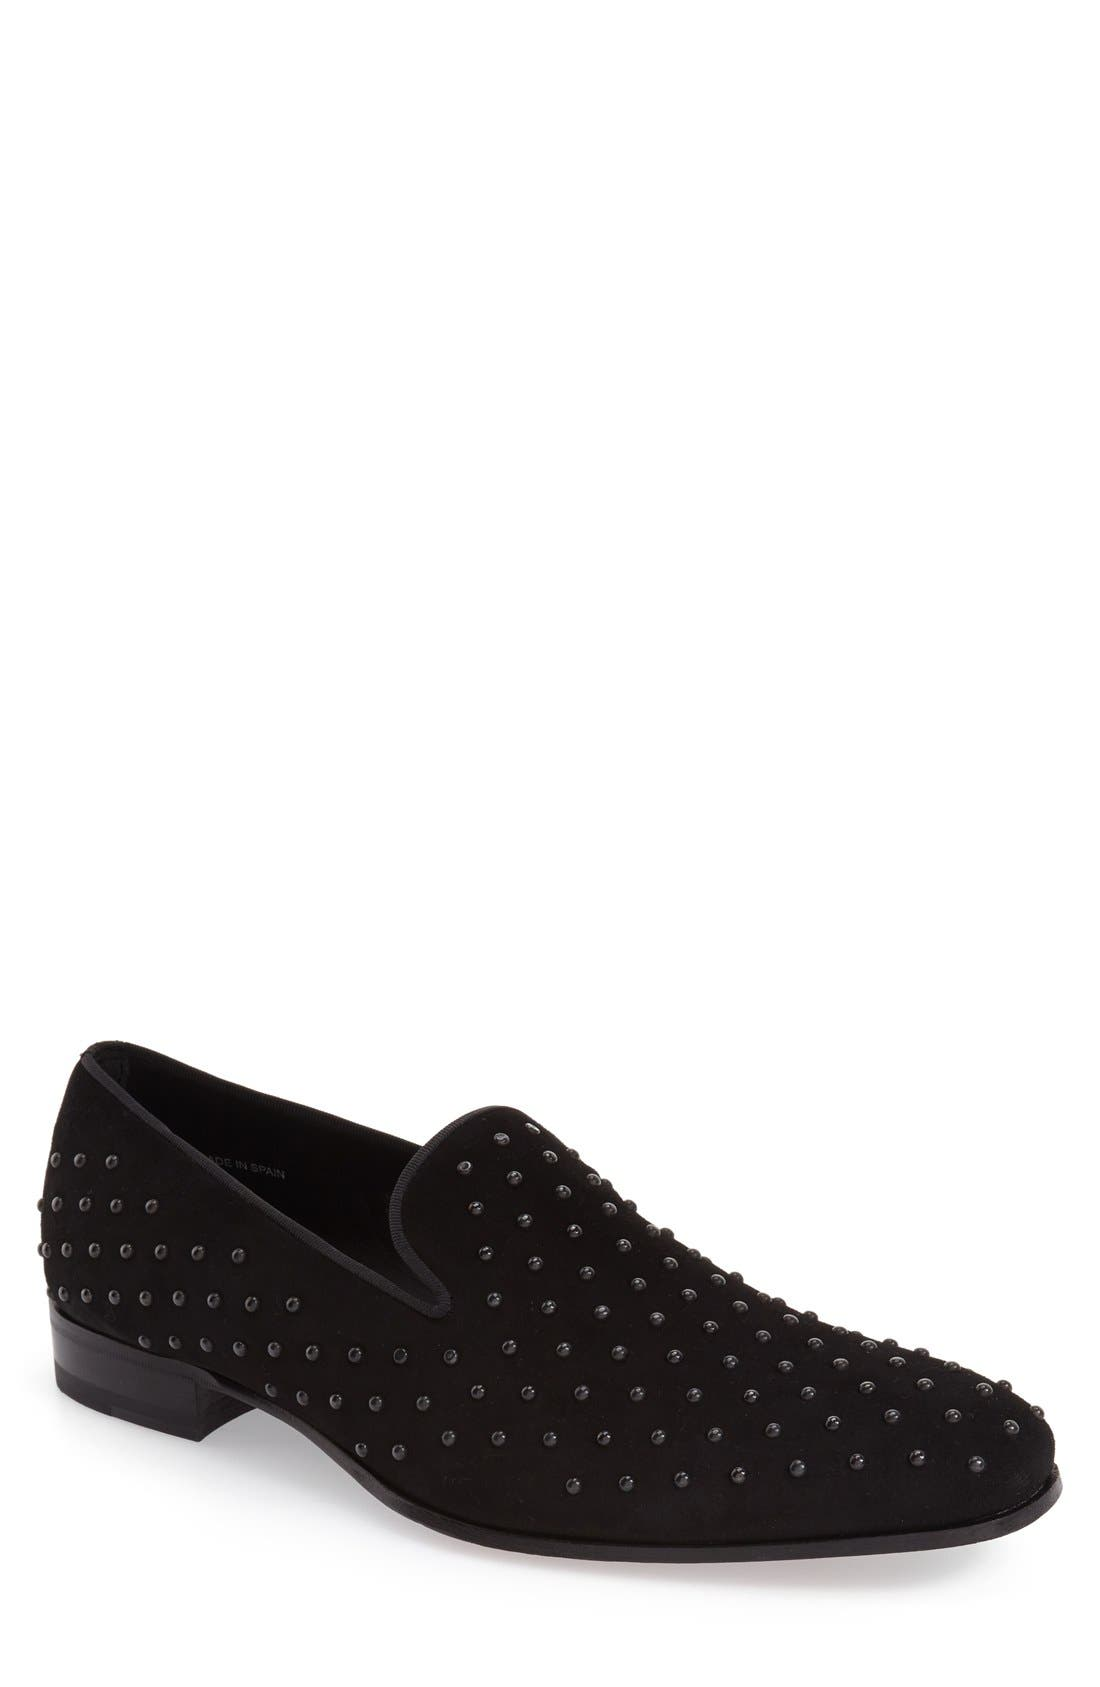 'Batiste' Studded Venetian Loafer,                             Main thumbnail 1, color,                             BLACK PRINTED FABRC